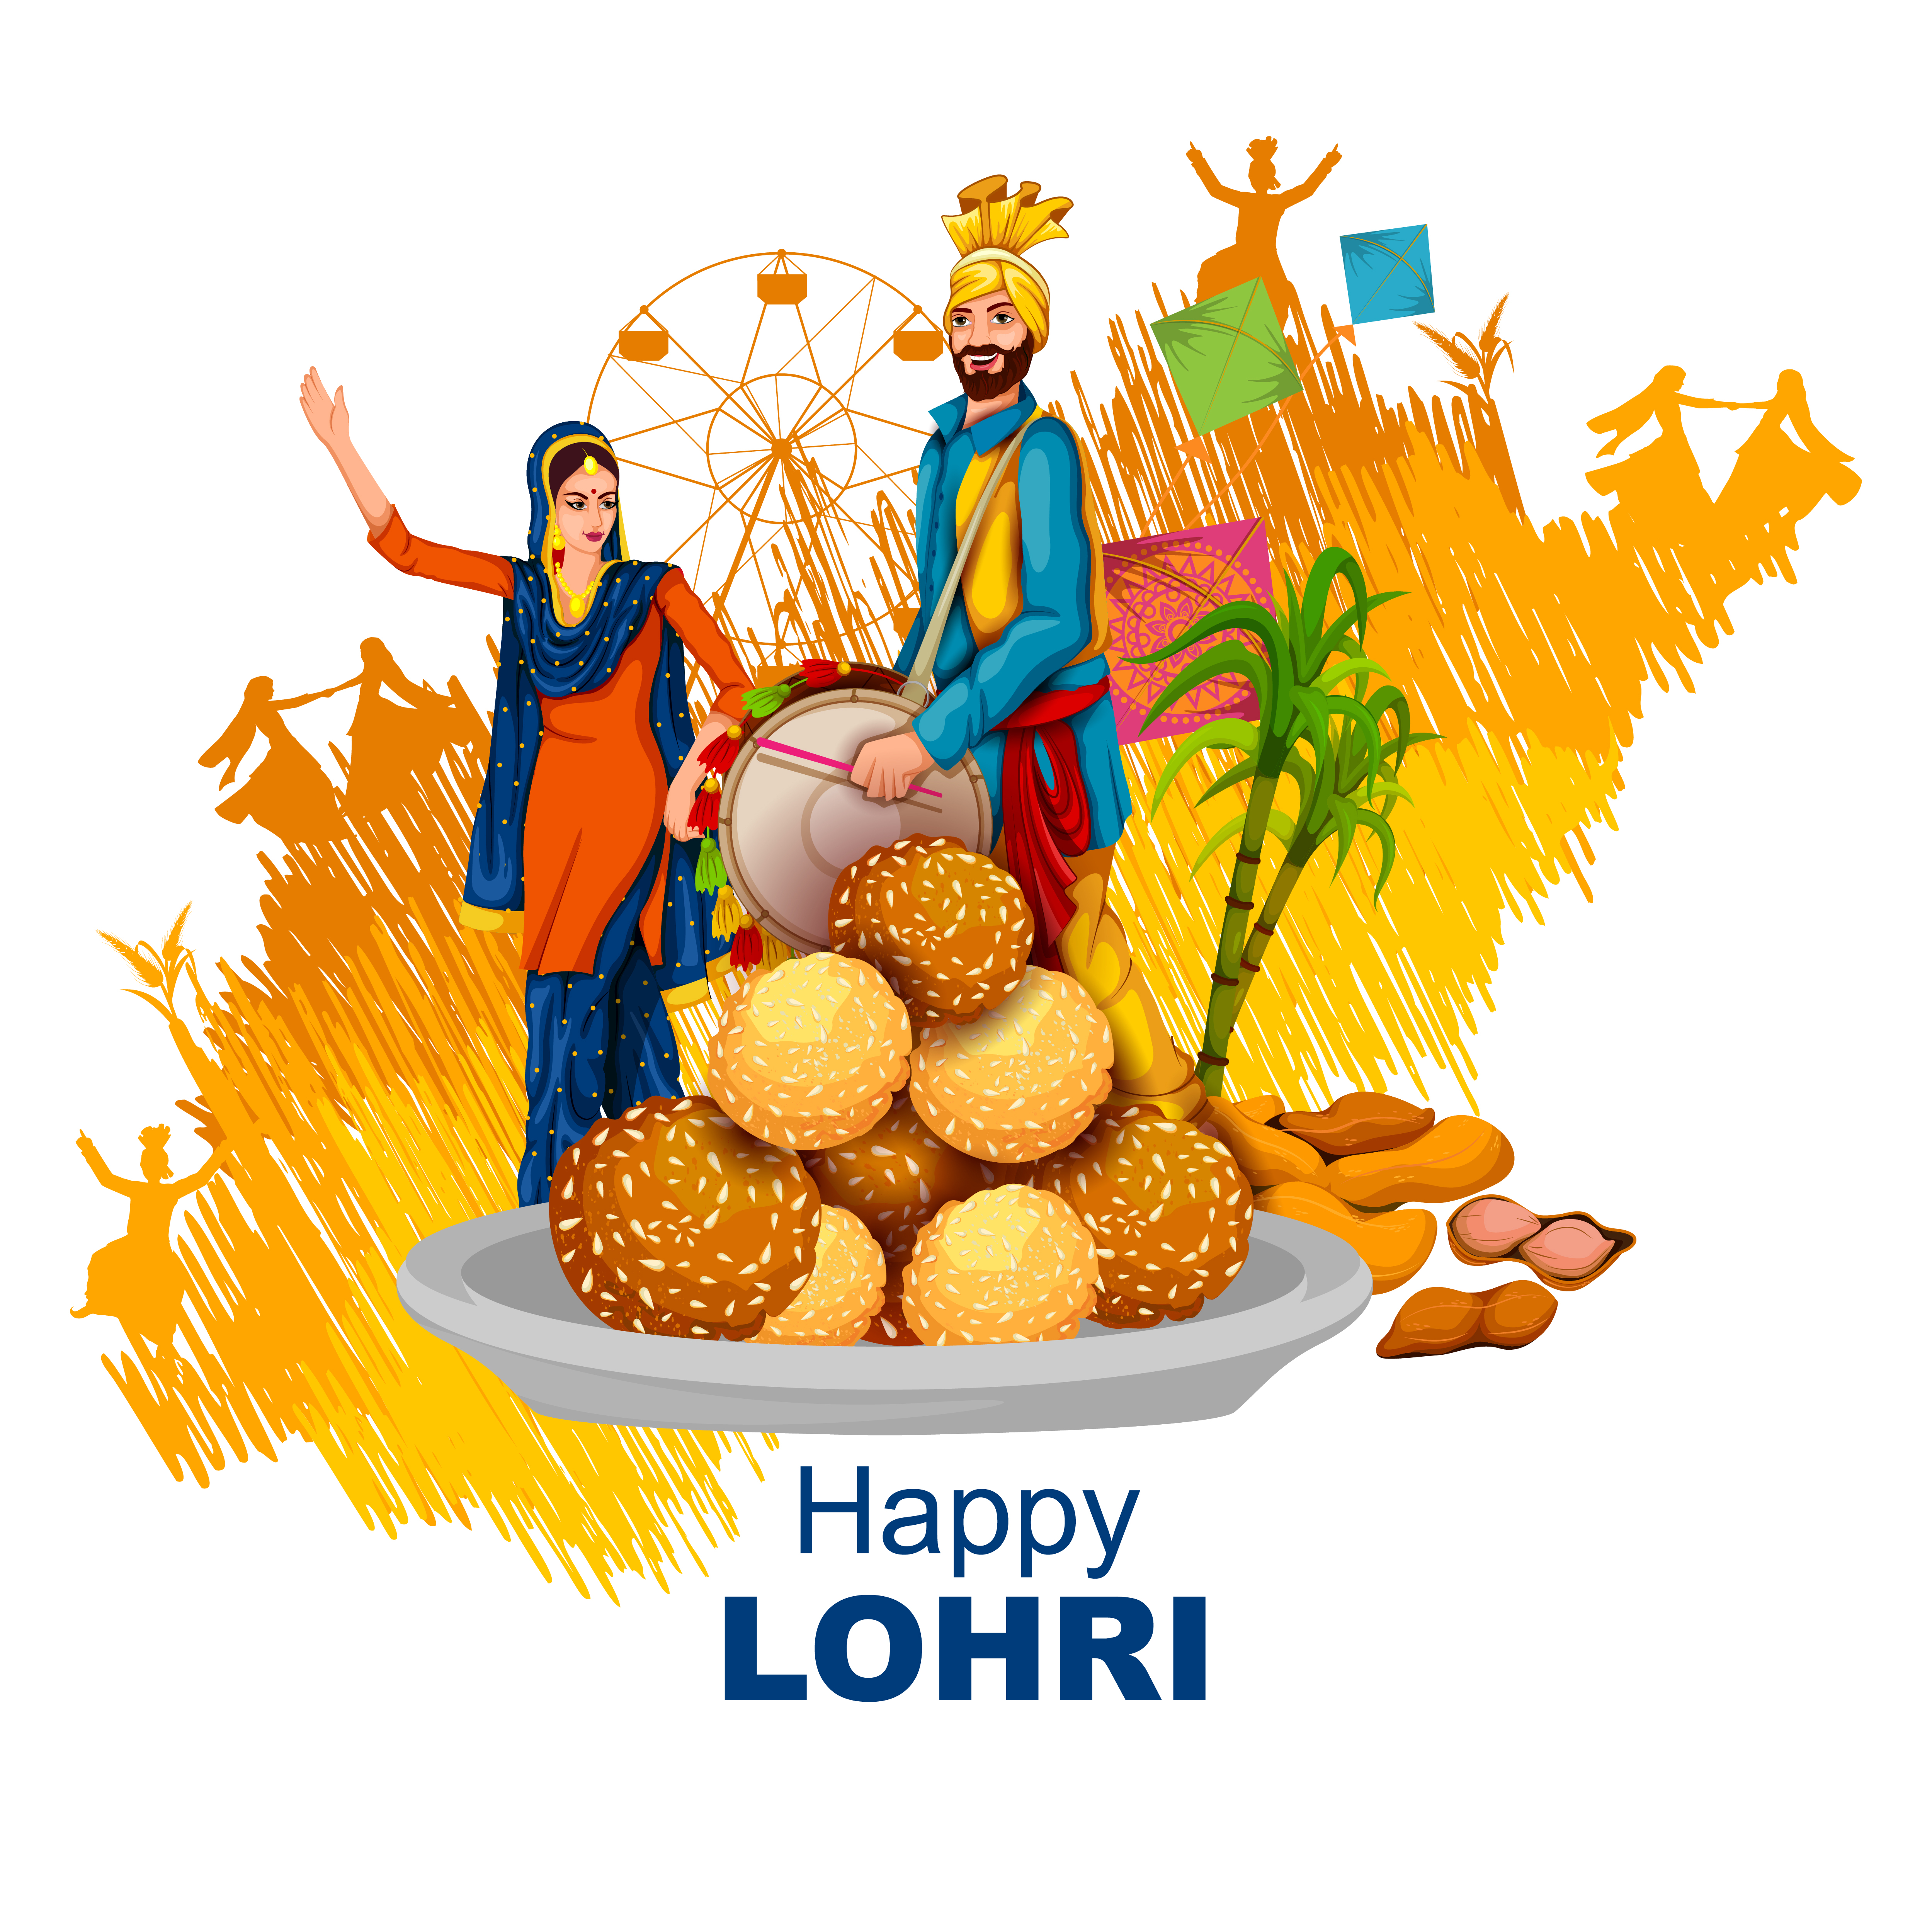 Lohri Gifts- Know the Best Lohri Gifts to Give Your Loved Ones' in India